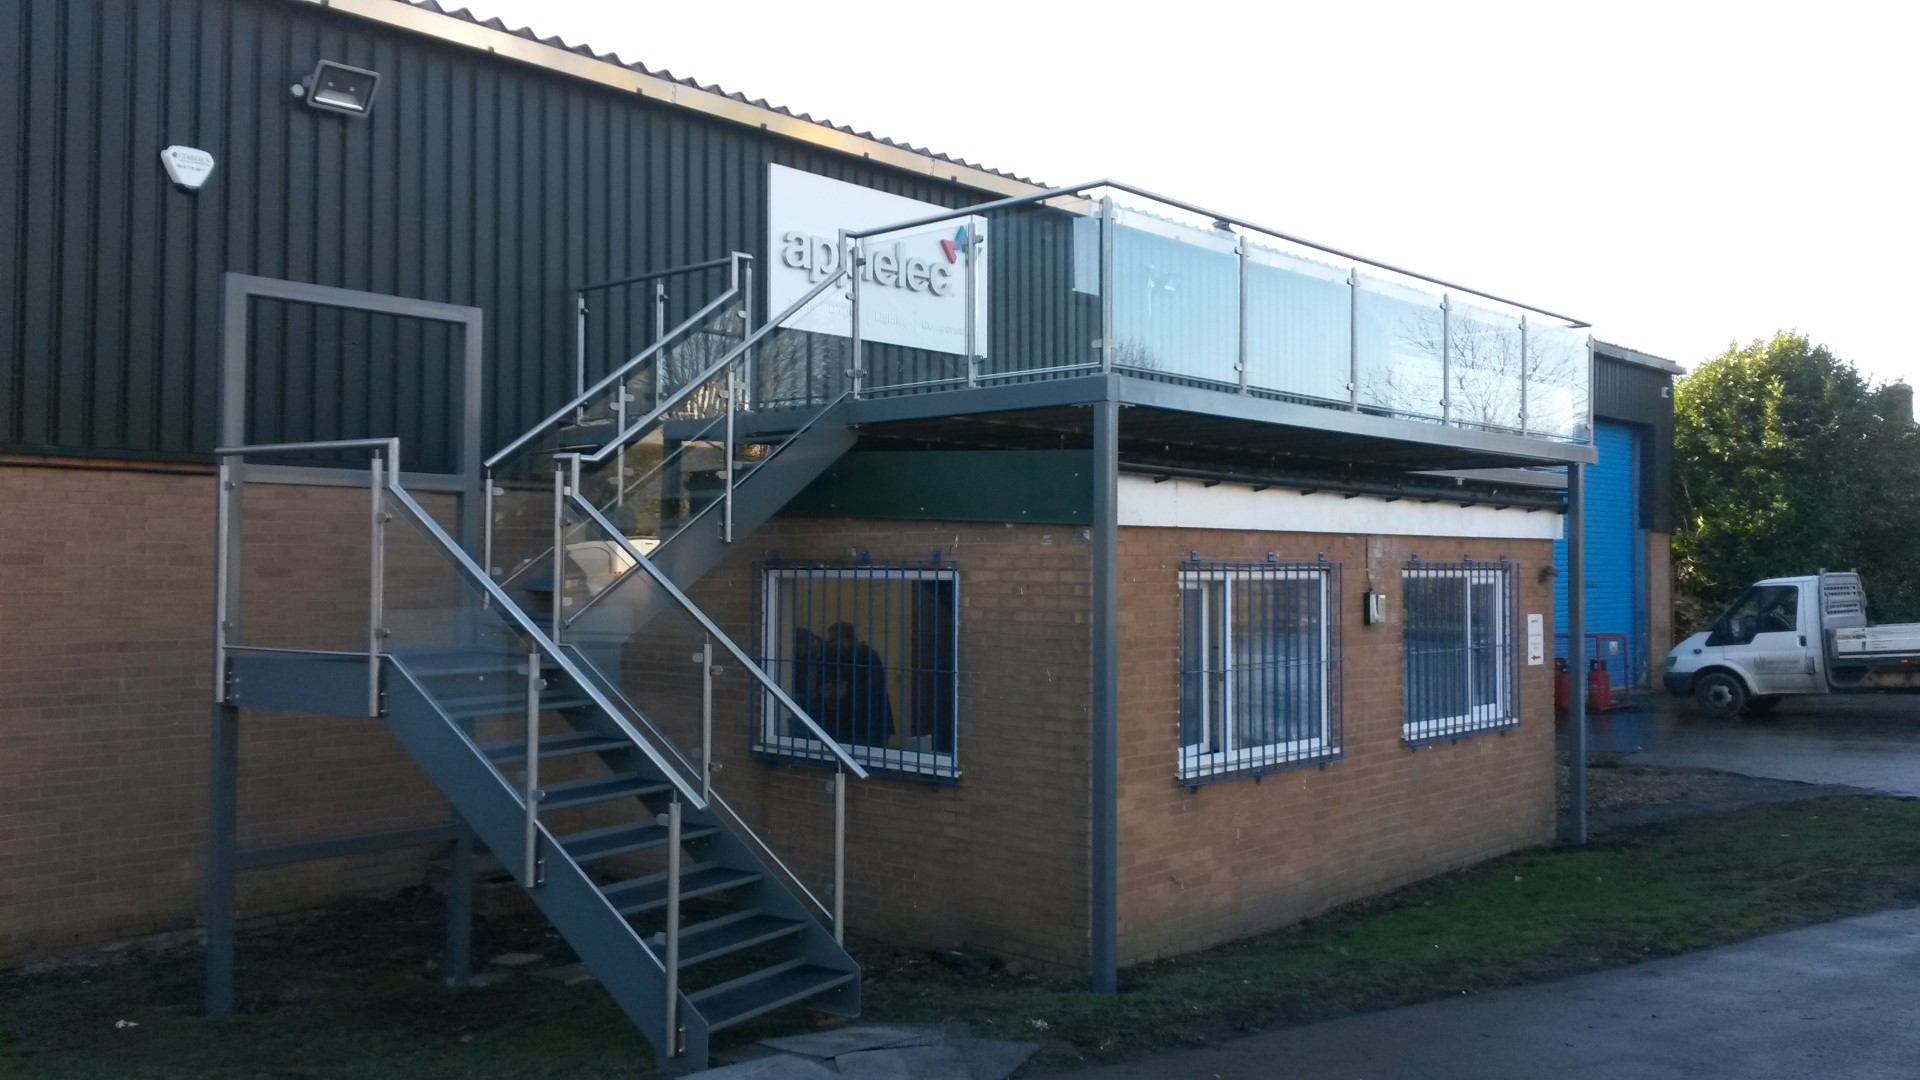 Commercial staircase and balcony designed, manufactured and installed by Bradfabs